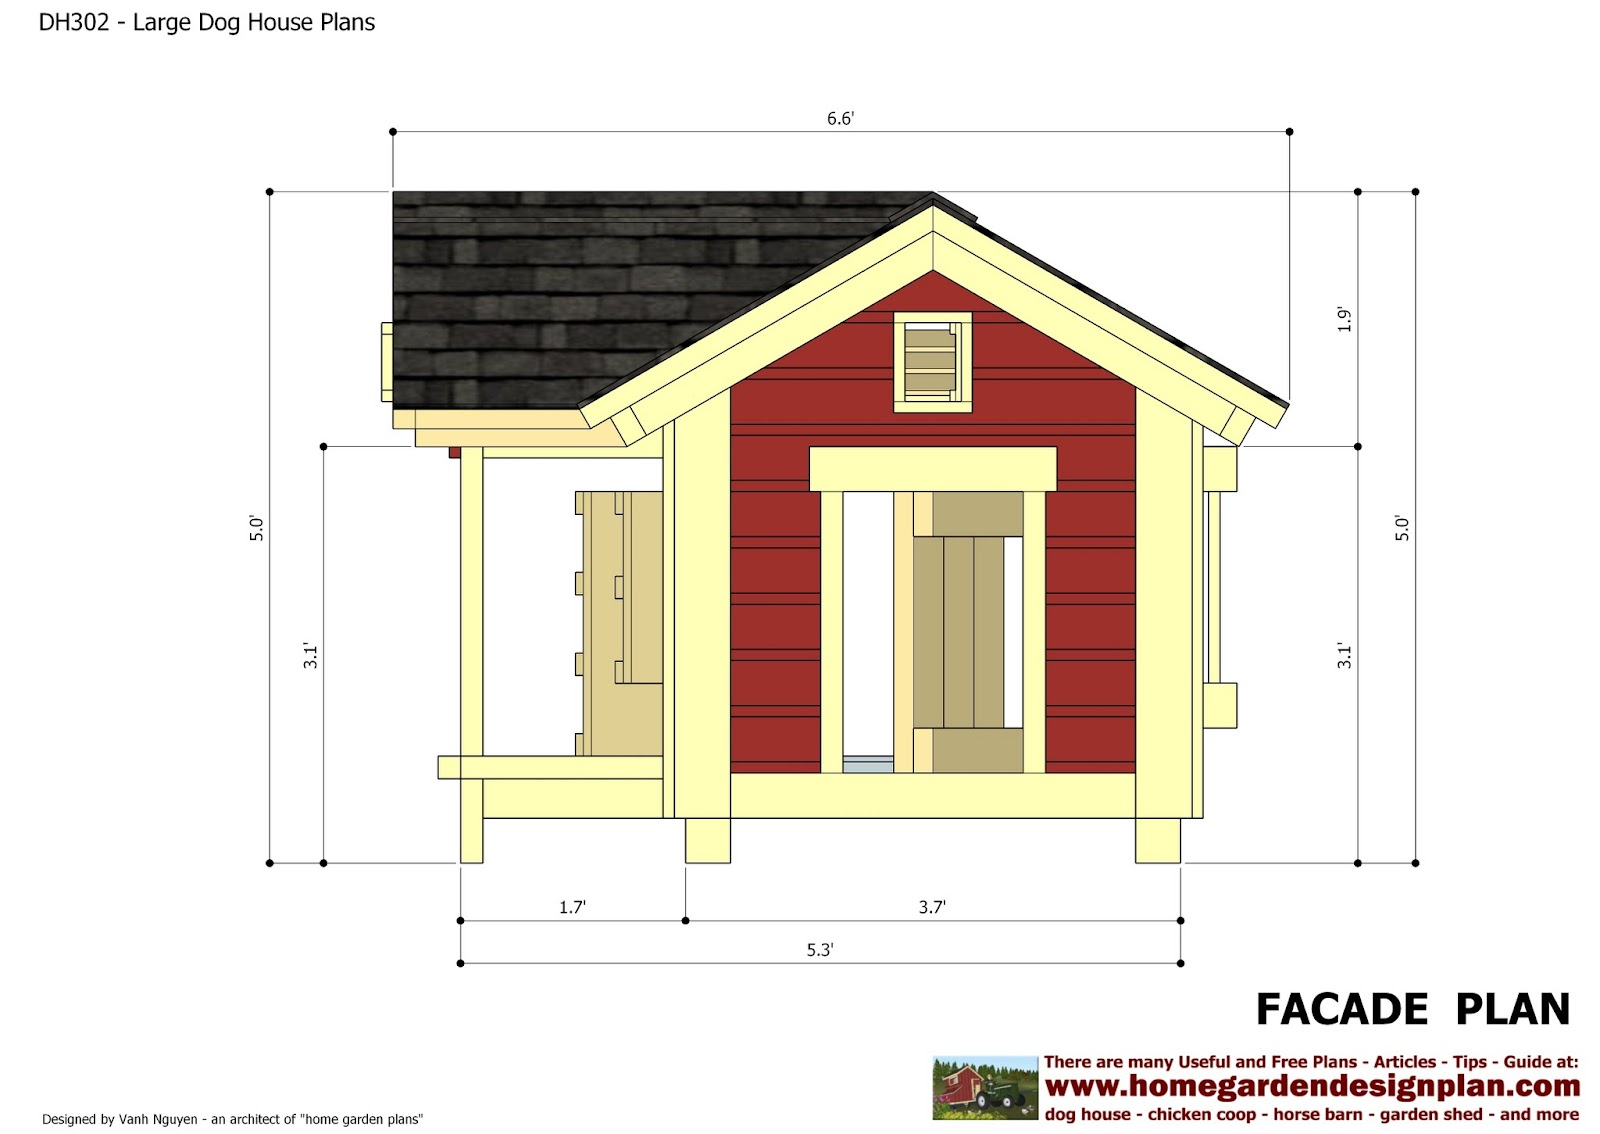 Home Garden Plans Dh302 Insulated Dog House Plans